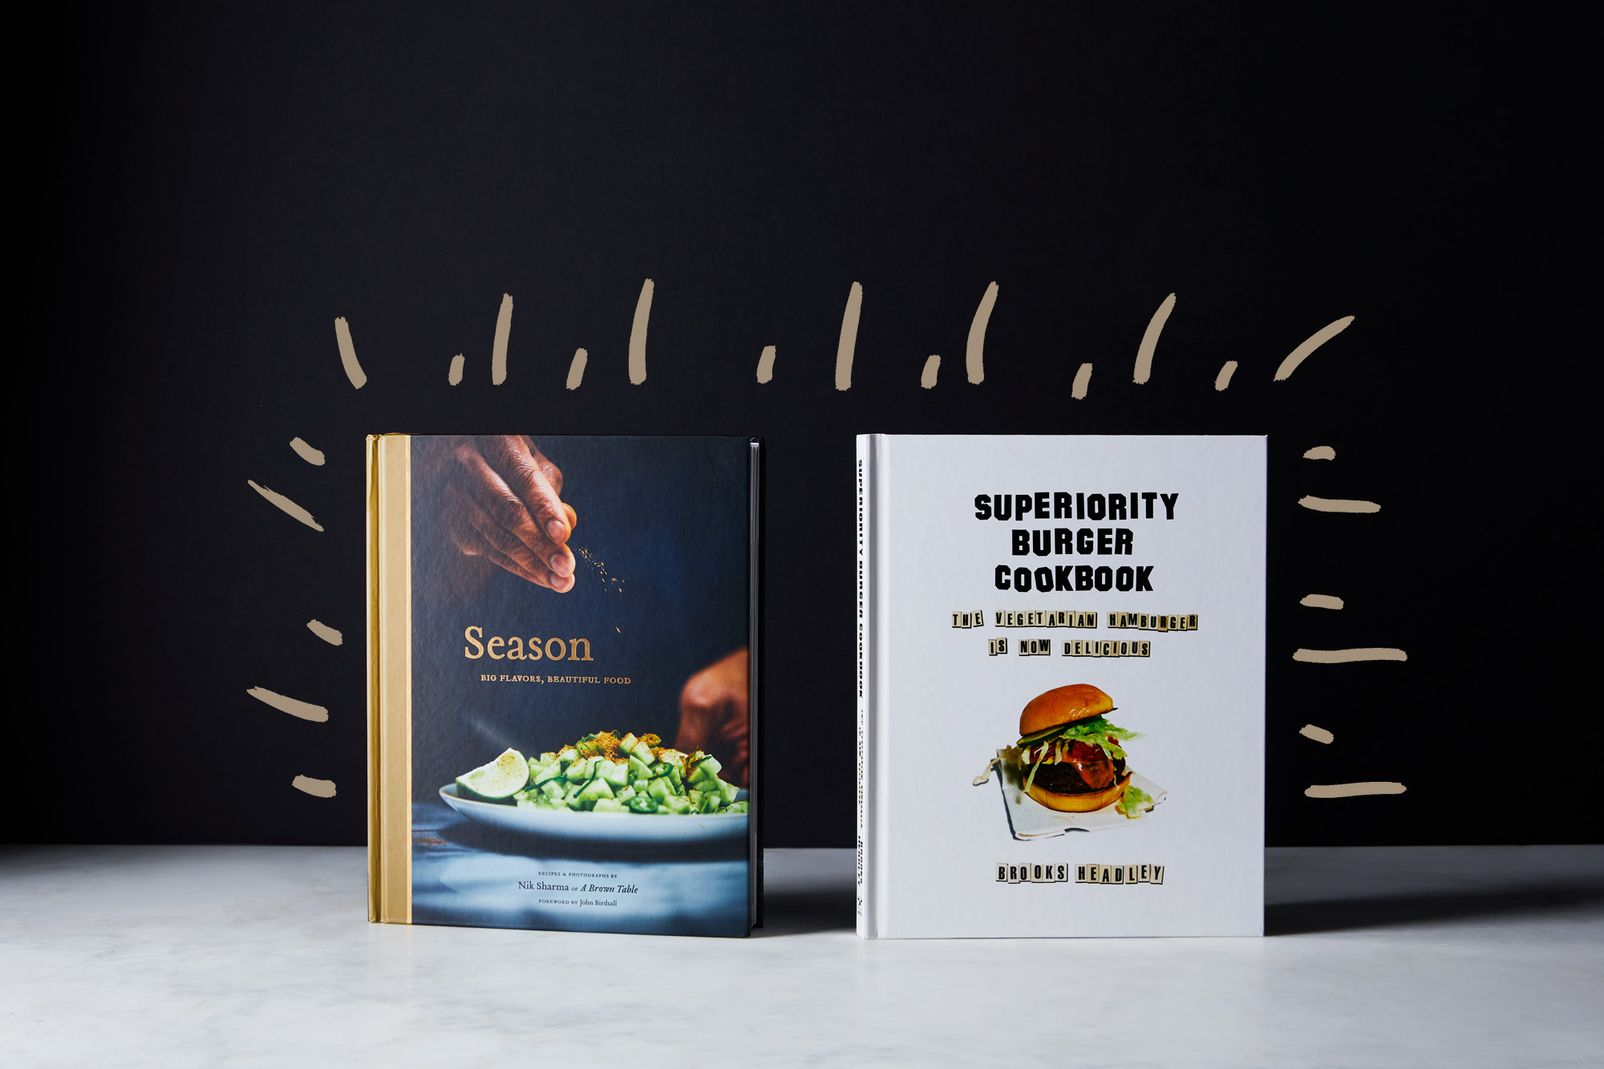 Season vs. Superiority Burger Cookbook